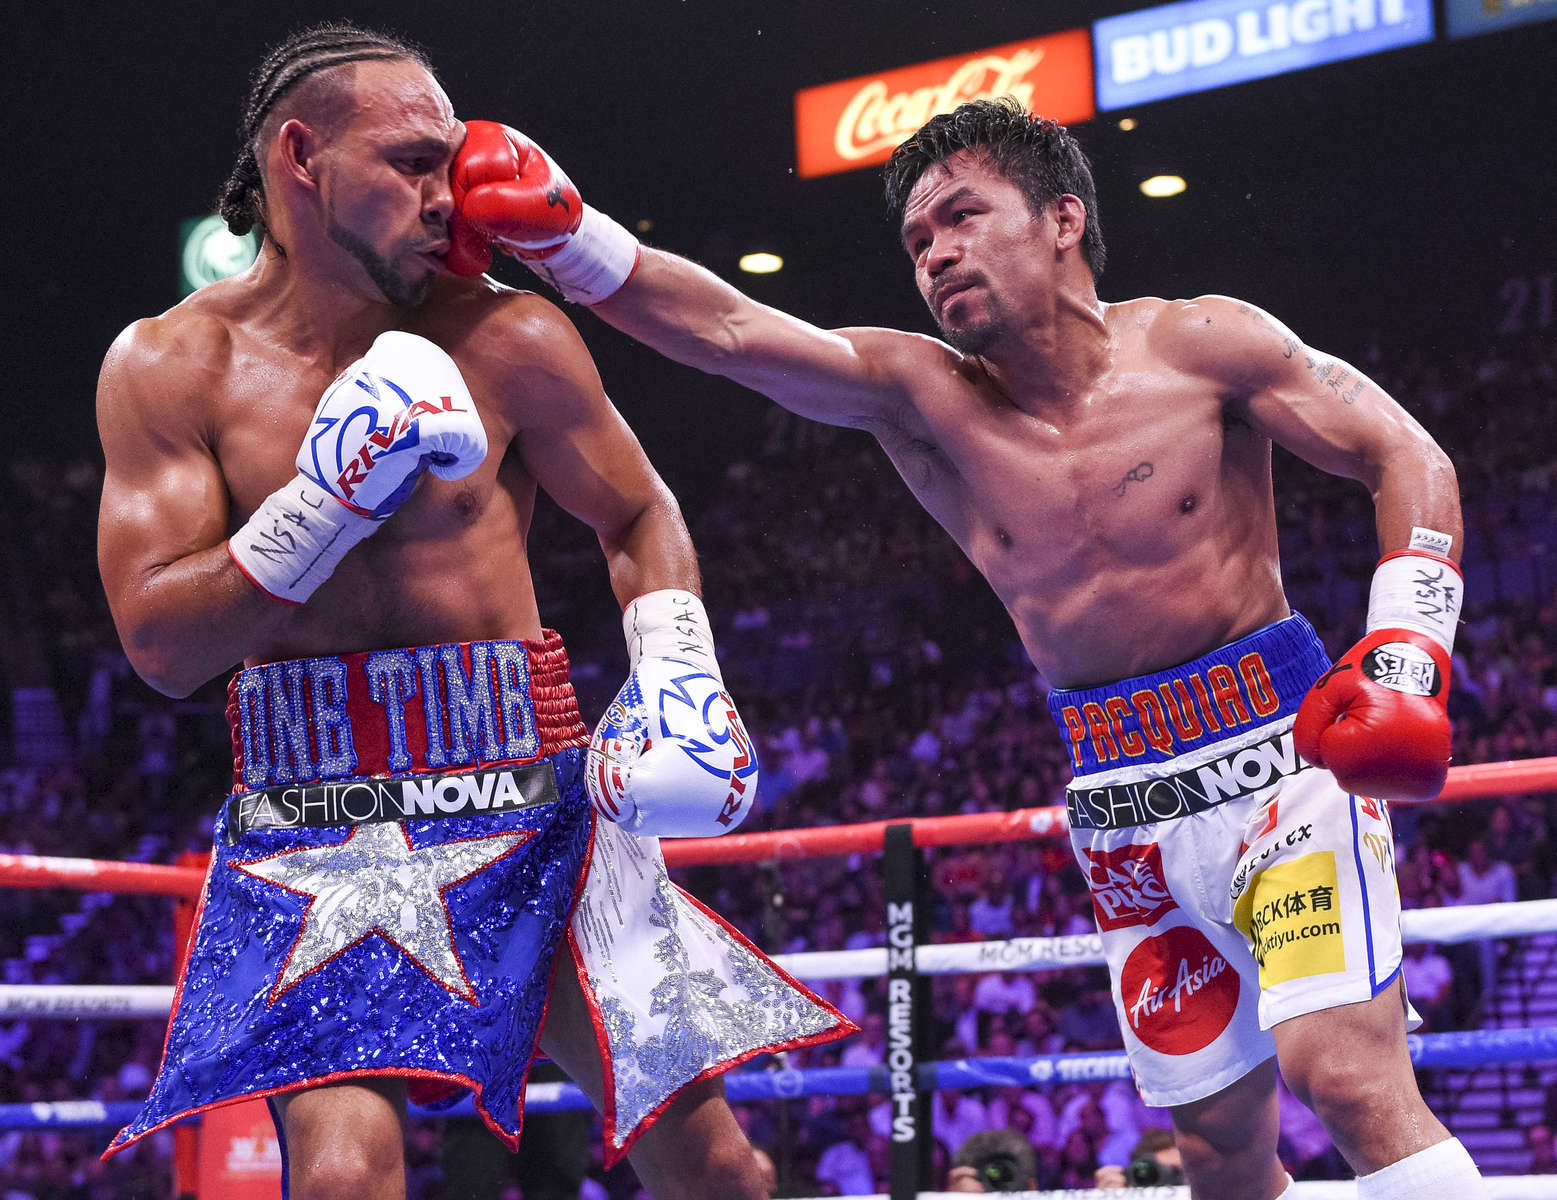 LAS VEGAS - JULY 20: Manny Pacquiao connects on Keith Thurman during the FOX Sports PBC Pay-Per-View and PBC on Fox Fight Night at the MGM Grand Garden Arena on July 20, 2019 in Las Vegas, Nevada. (Photo by Stewart Cook/Fox Sports/PictureGroup)